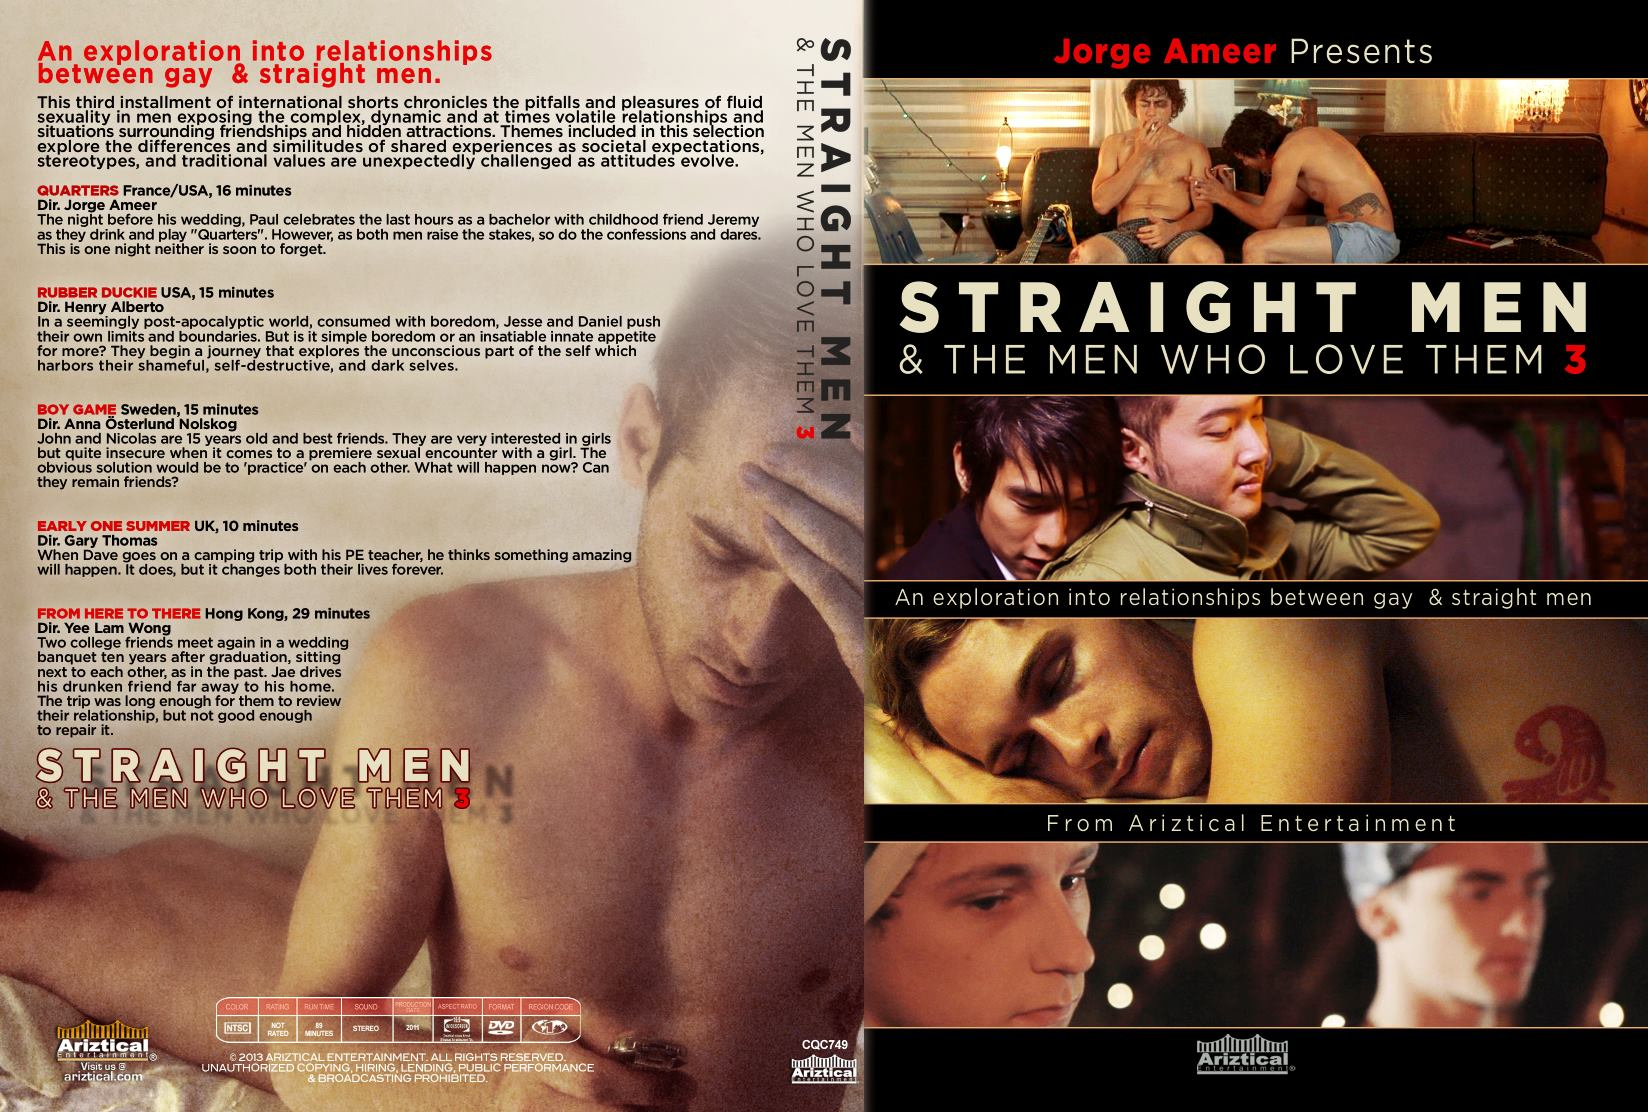 Cover Of 'Straight Men & The Men Who Love Them 3' DVD release